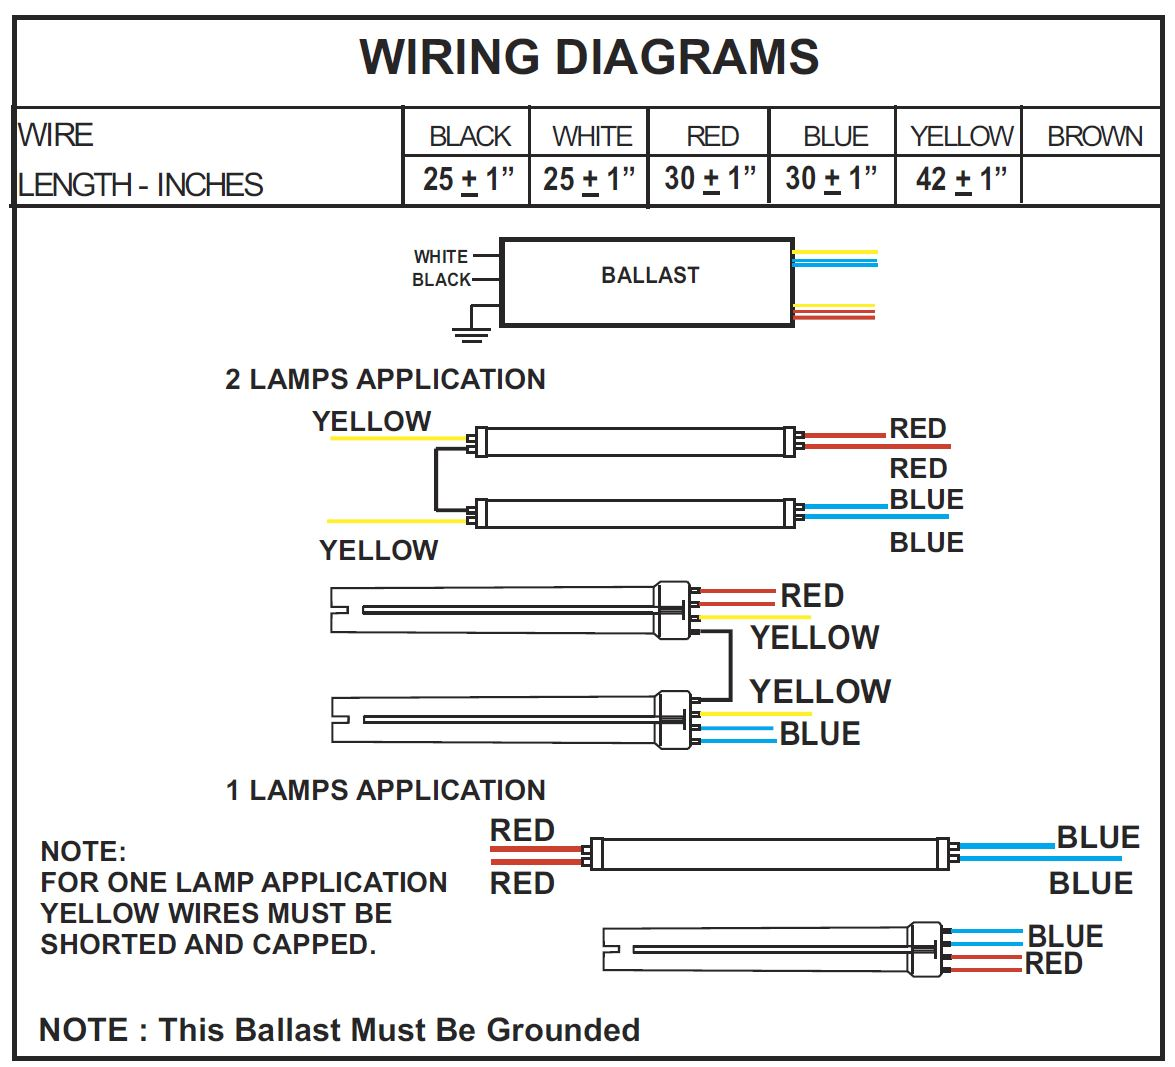 RHA UNV 254 LT5 wiring diagram rha unv 254 lt5 2 lamp t5 multi purpose electronic ballast t5 ballast wiring diagram at soozxer.org